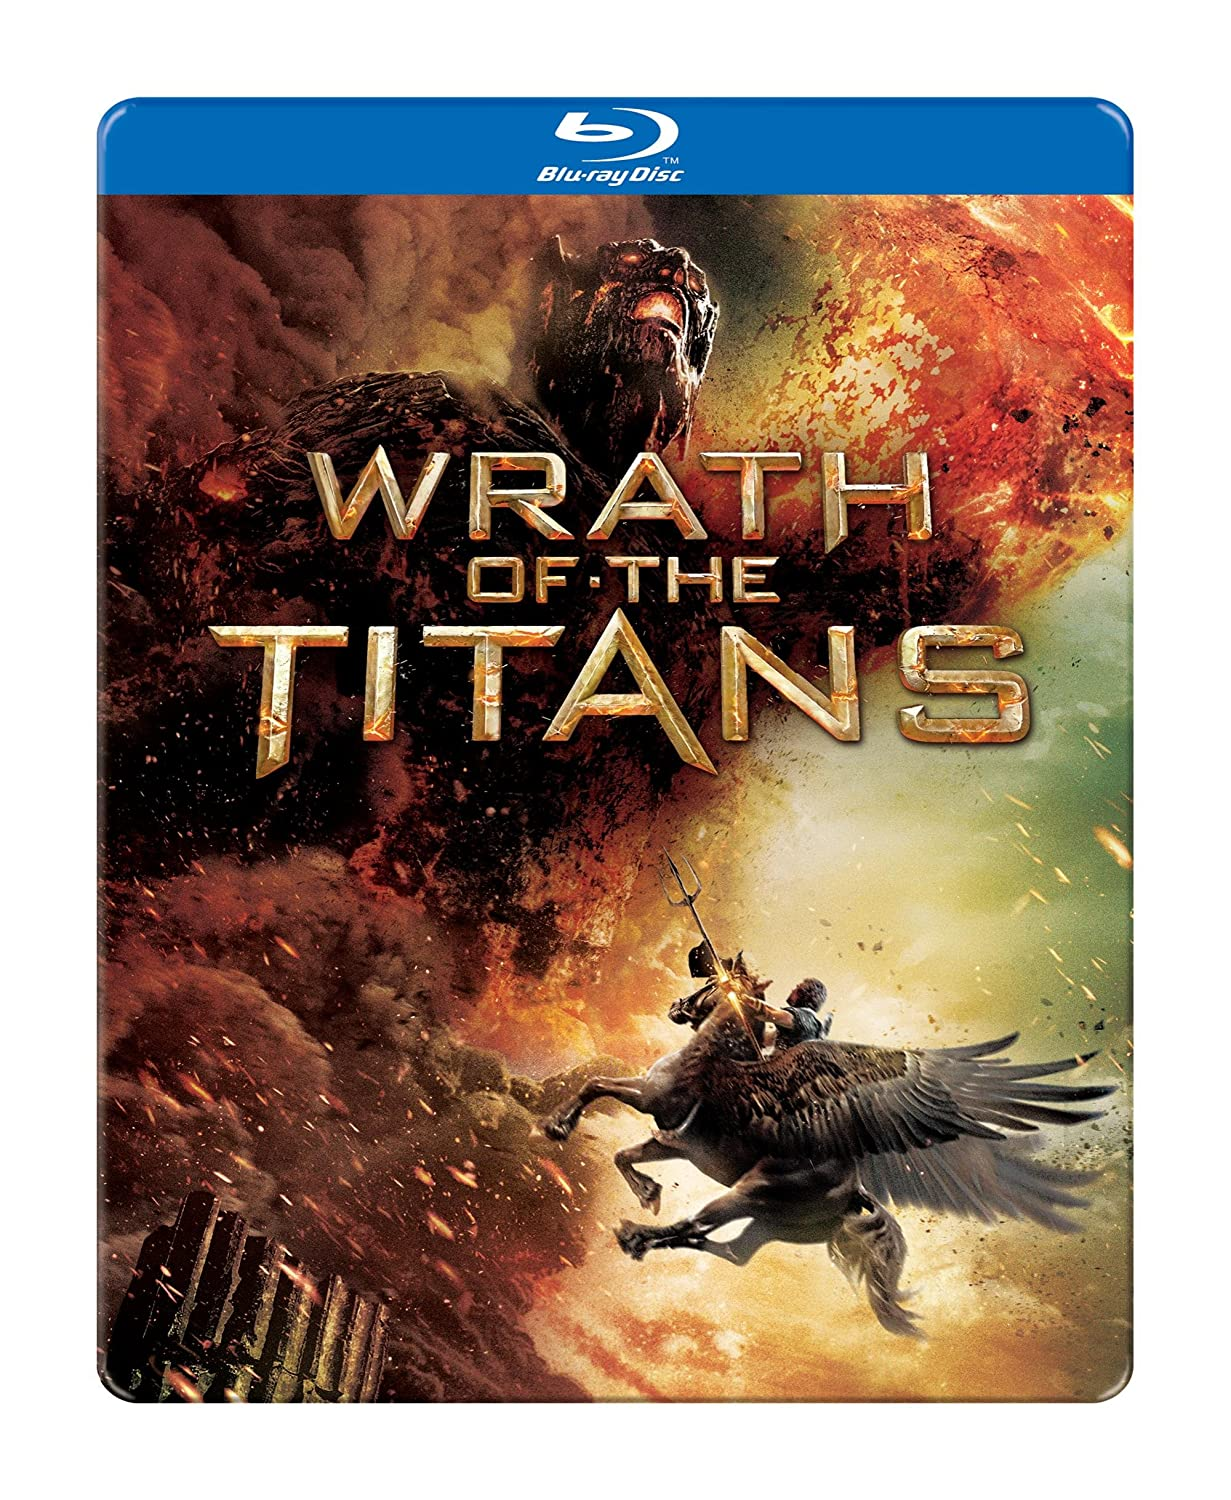 Save up to 58% on Select Blu-ray Steelbooks